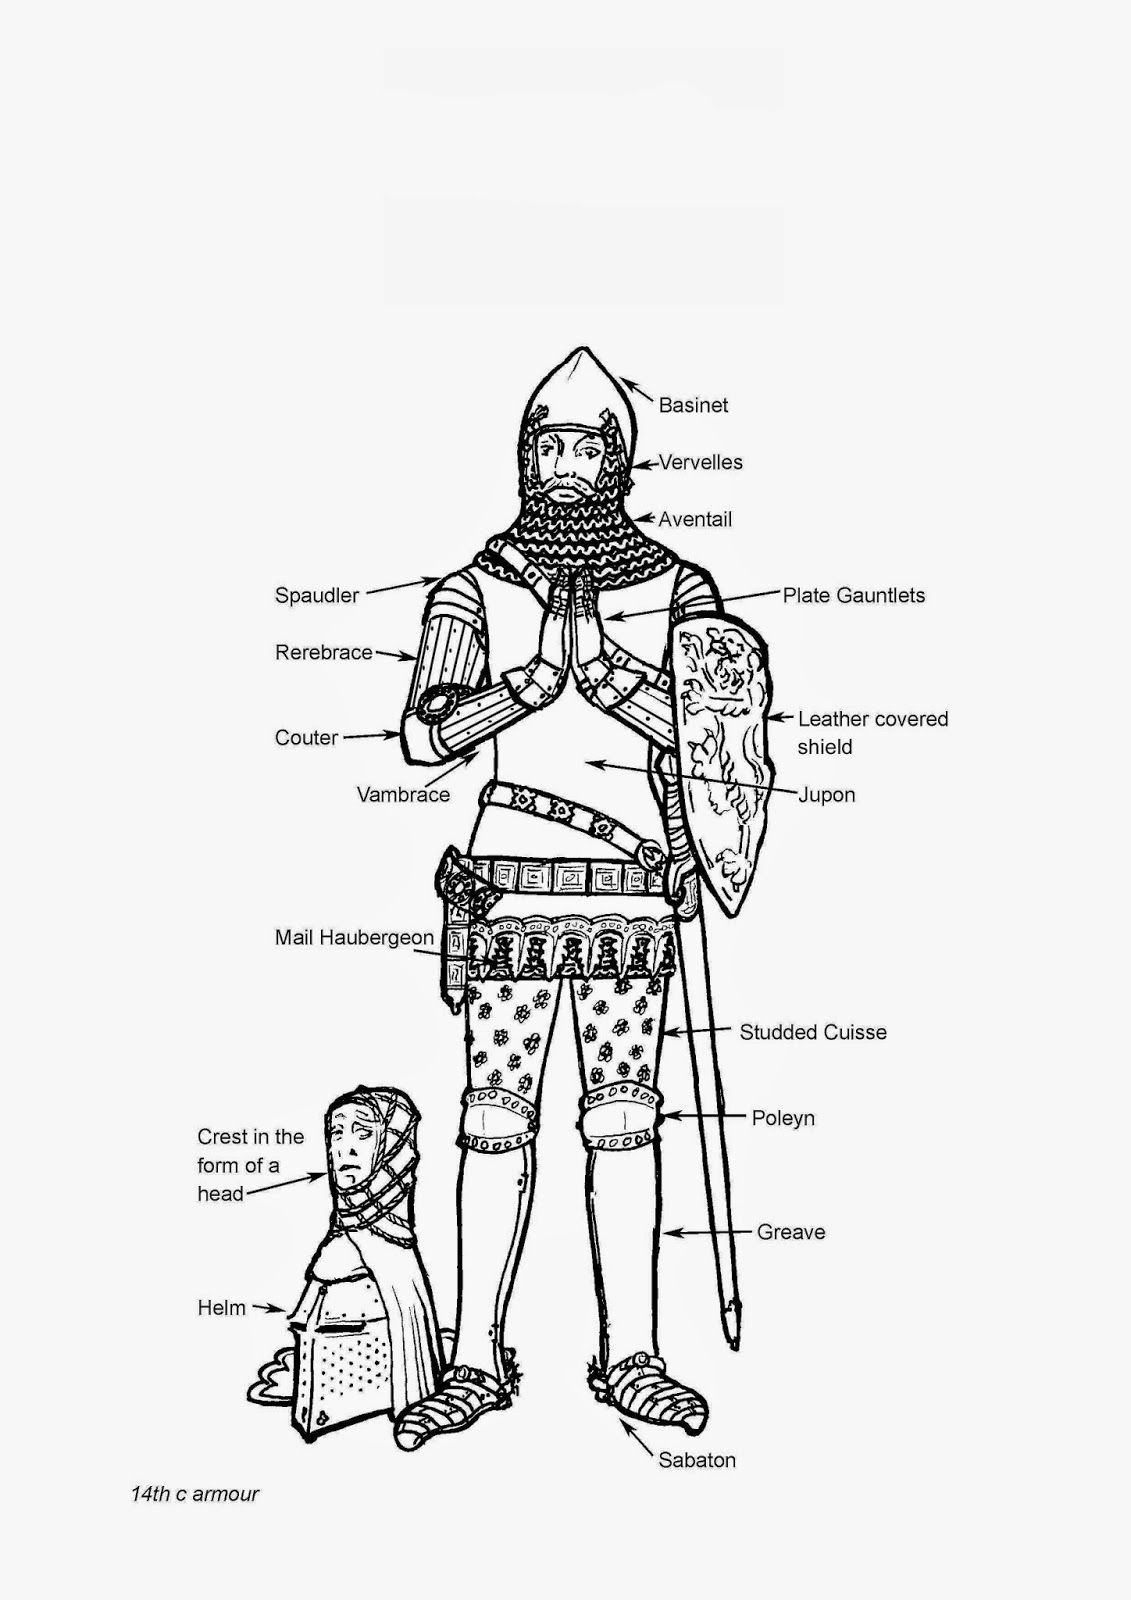 armour illustrations  parts of armour diagrams 13th to